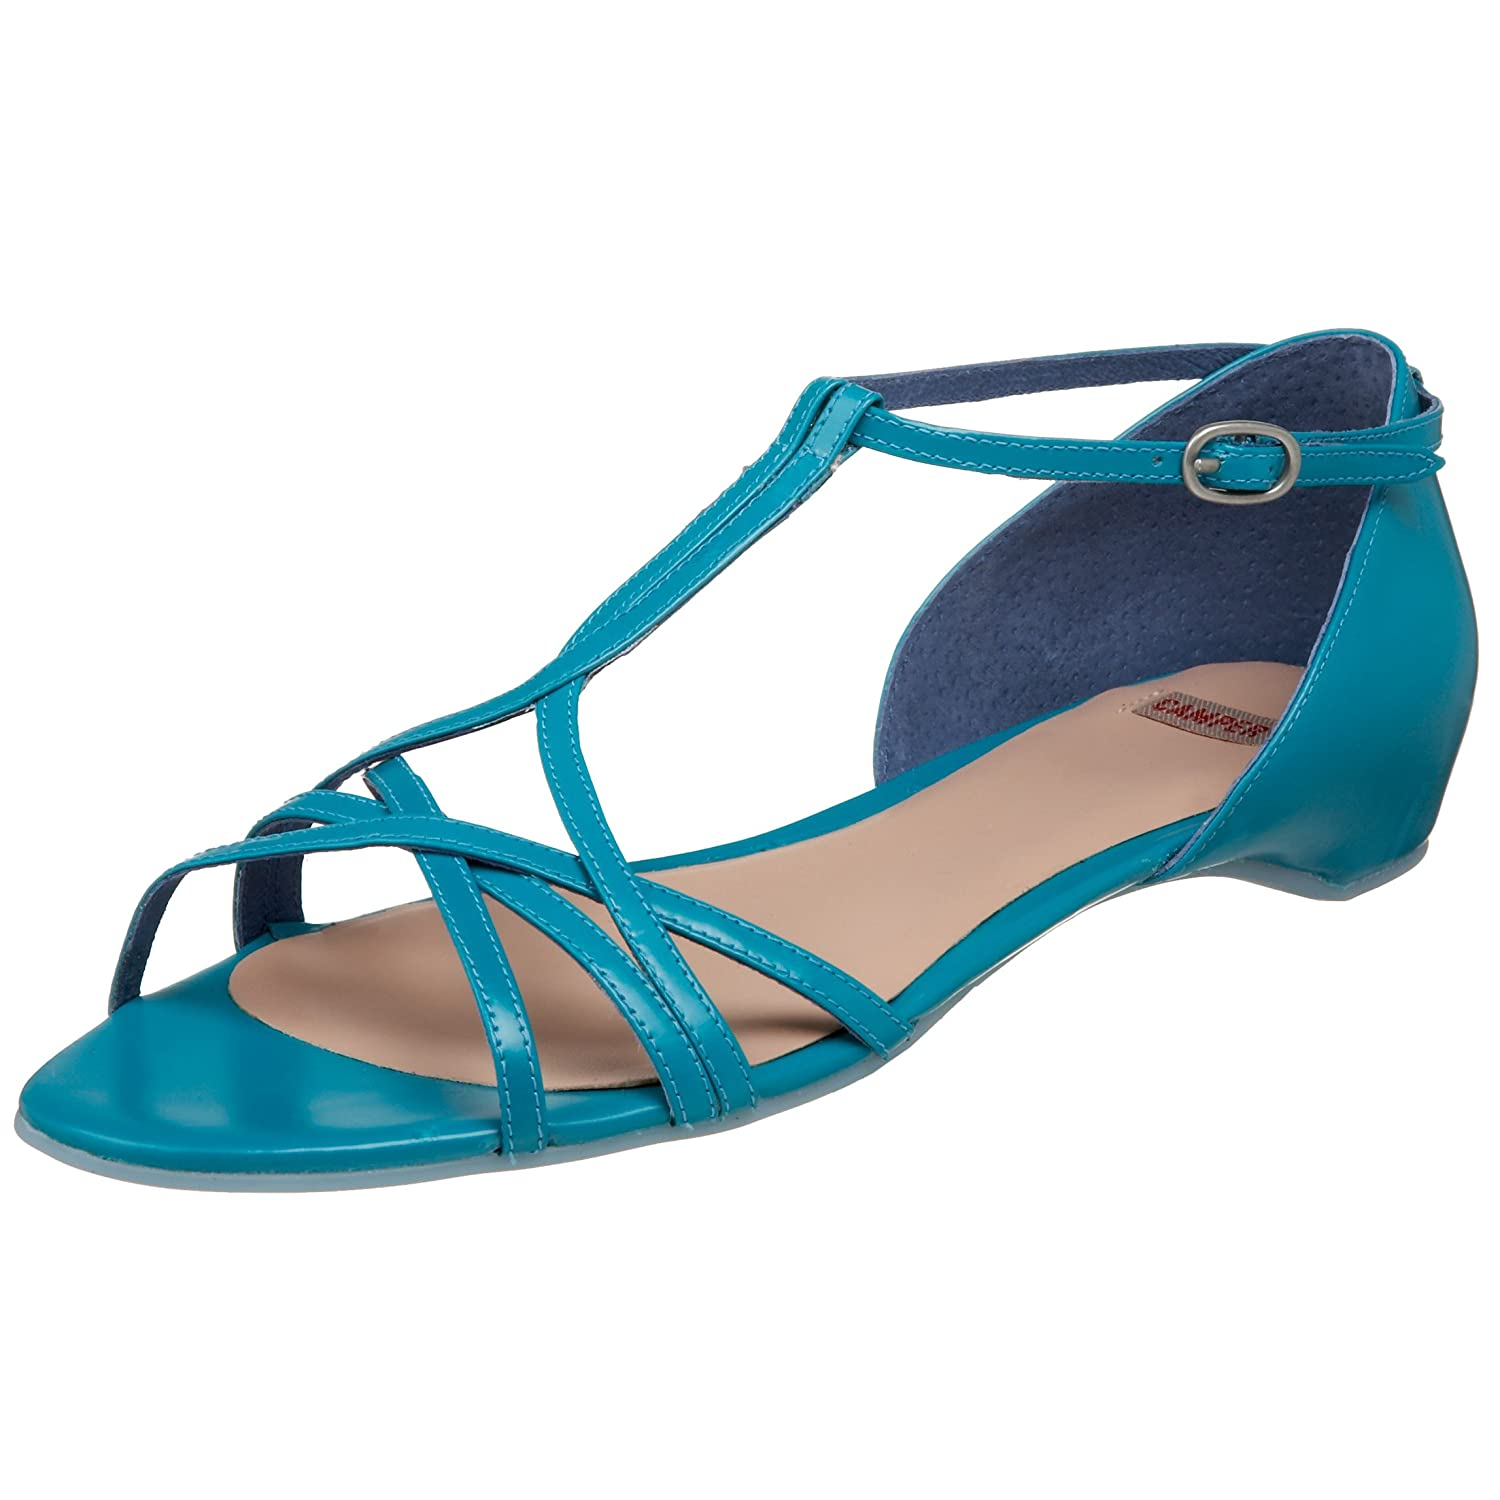 Camper 20918-006 Leia Sandal - Free Overnight Shipping & Return Shipping: Endless.com :  t-strap low heel retro flats